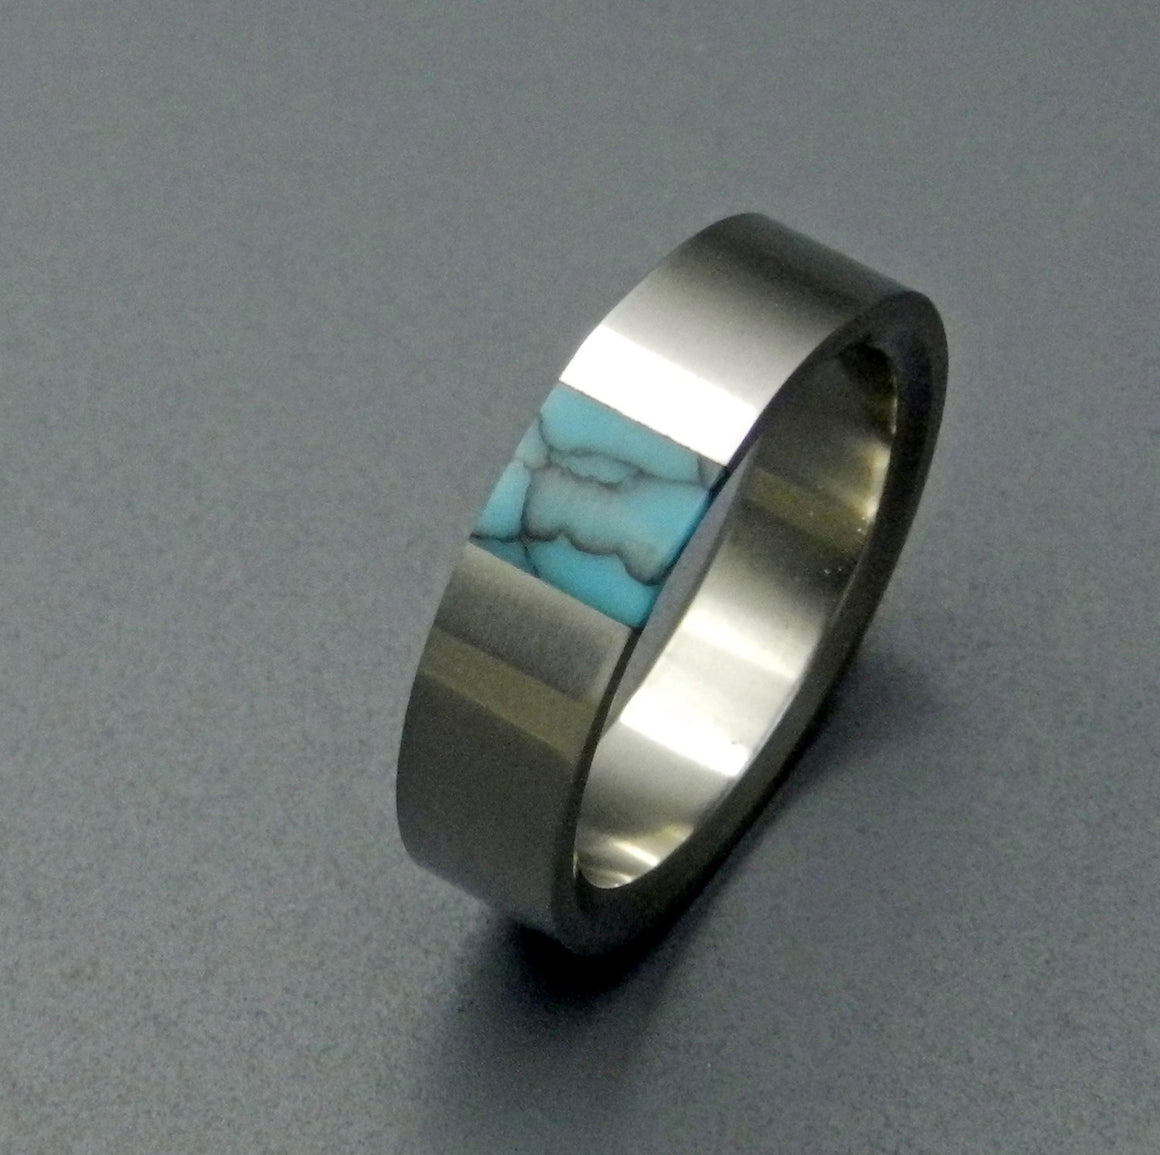 True North | Titanium Turquoise Wedding Rings - Minter and Richter Designs